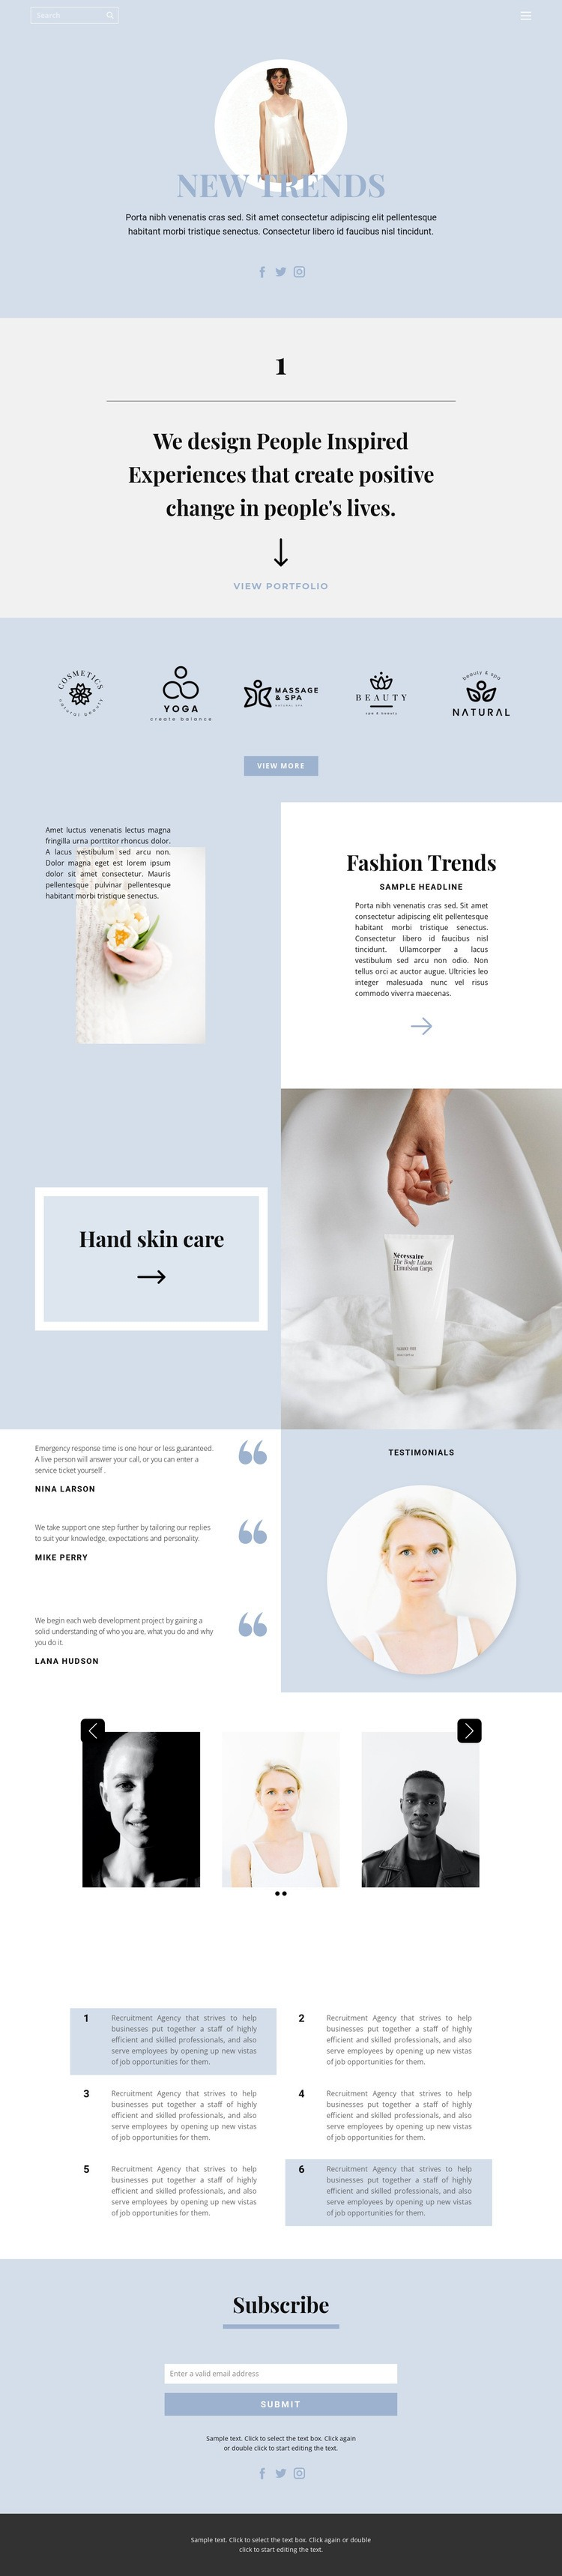 Setting trends Web Page Designer